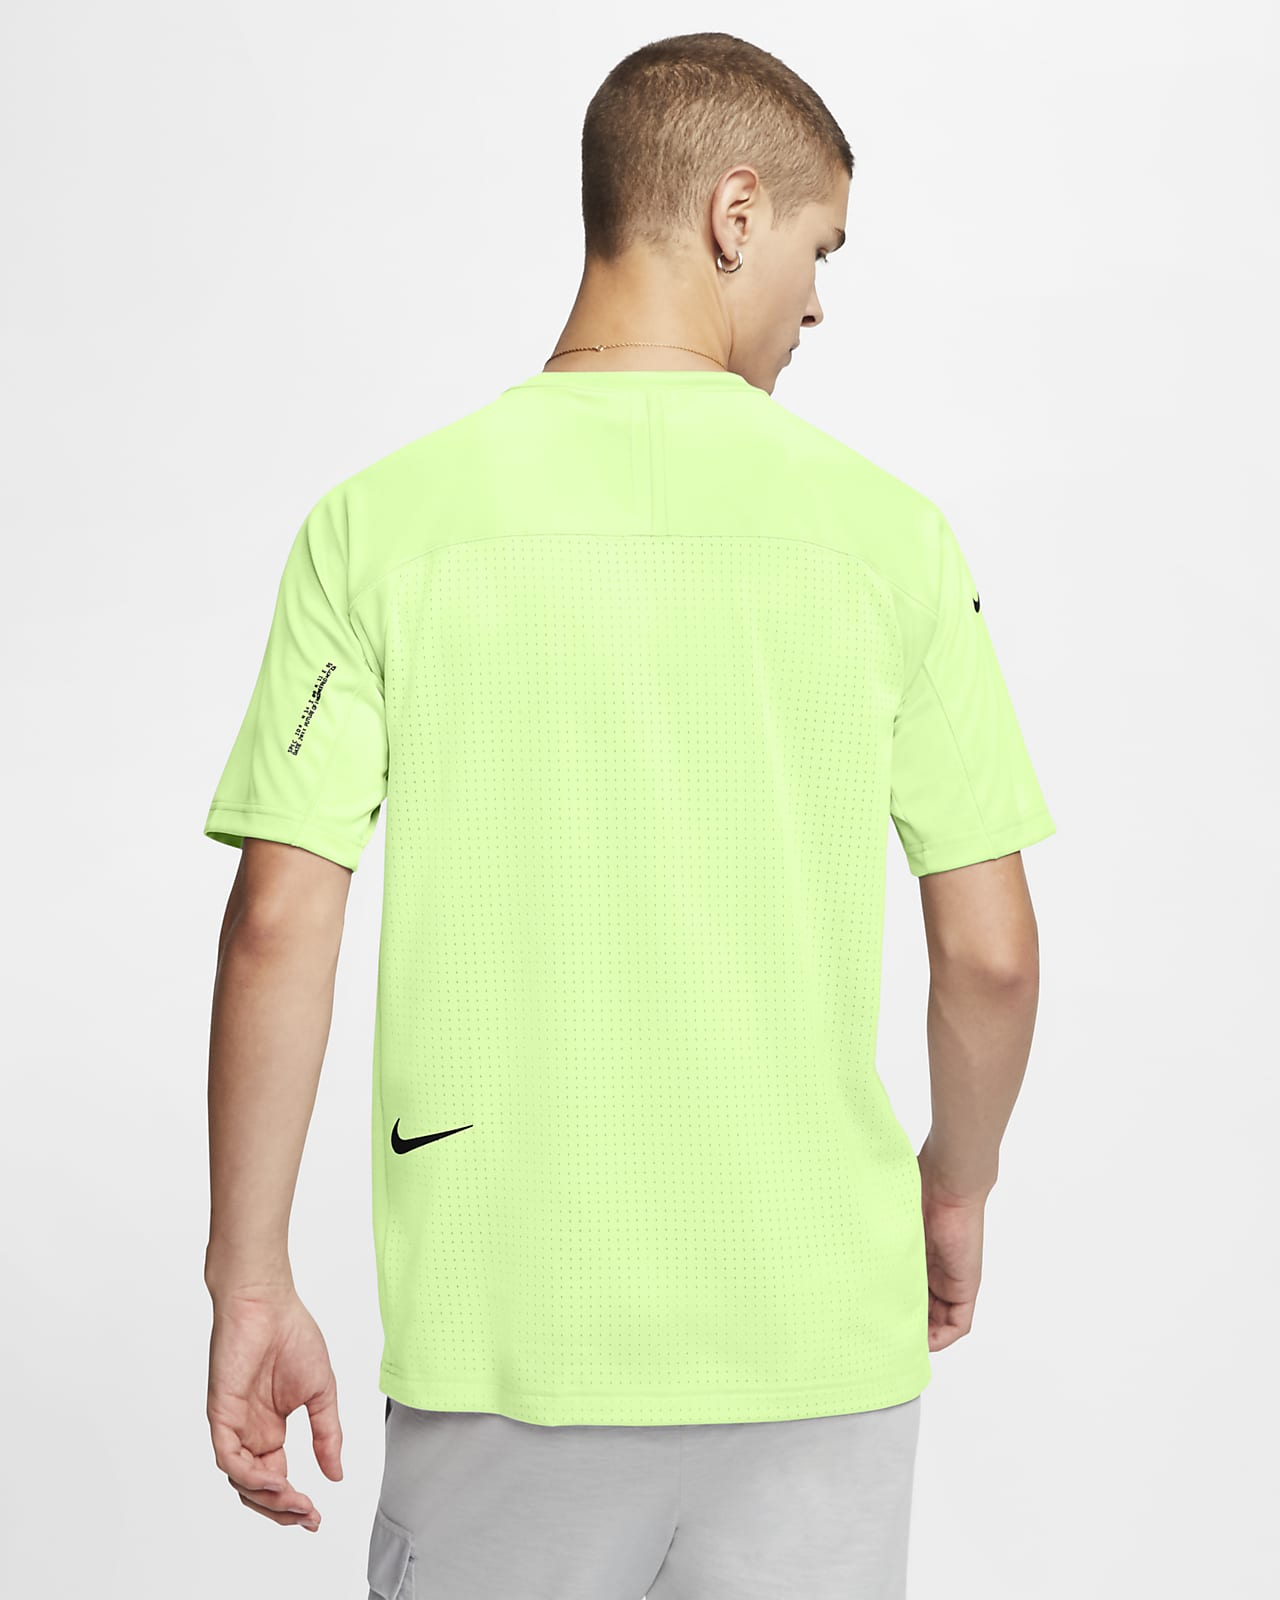 Nike Sportswear Tech Pack Men's Short Sleeve Knit Top